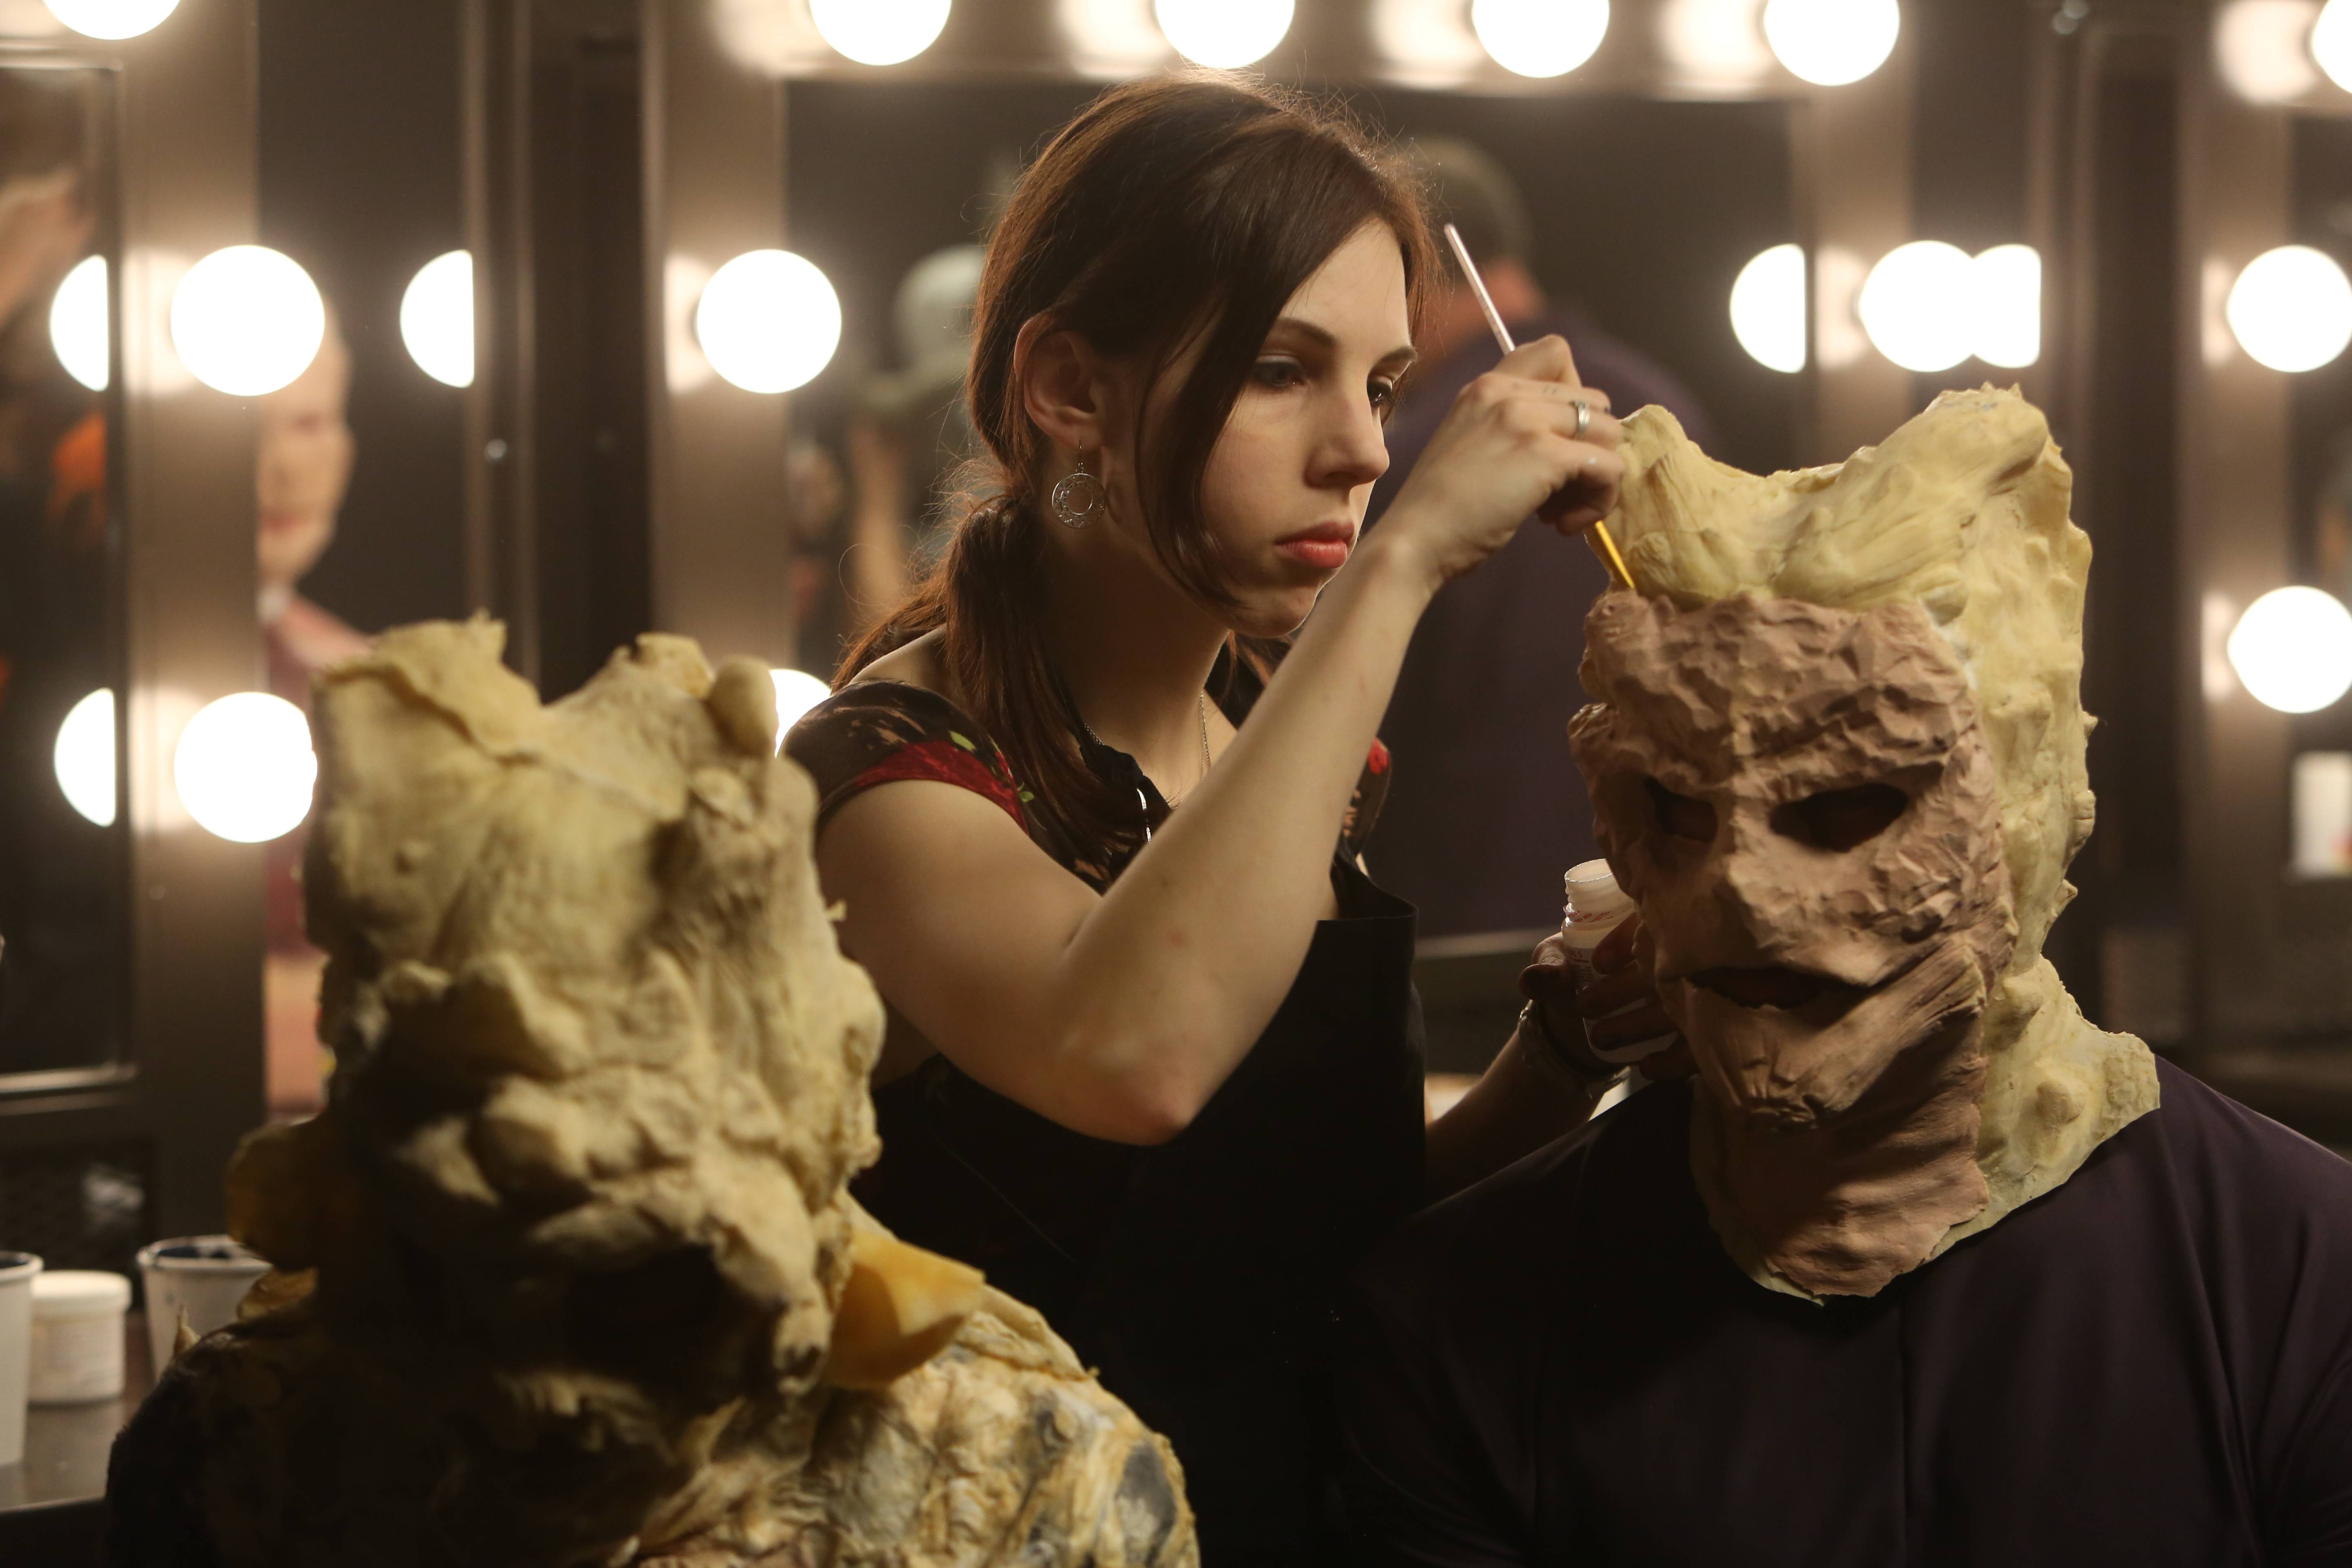 Stevie Calabrese, of Grayslake, applies makeup to a creature she created for Face Off, a reality show on Syfy.